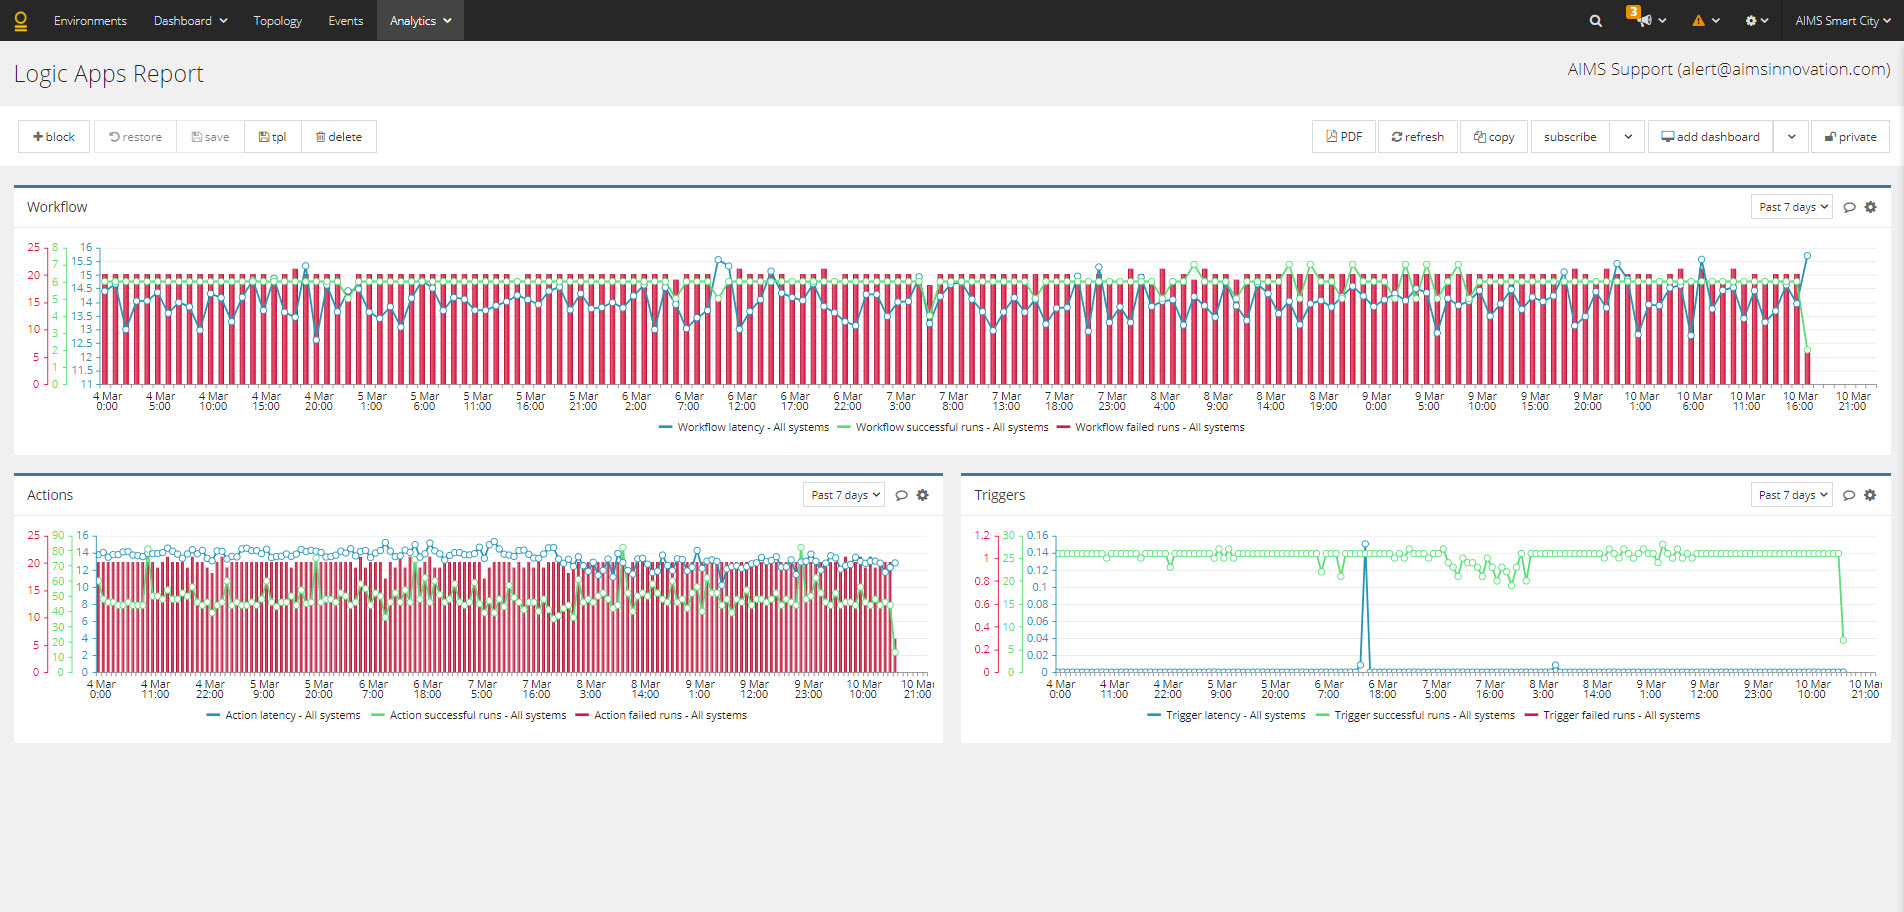 AIMS Logic Apps monitoring